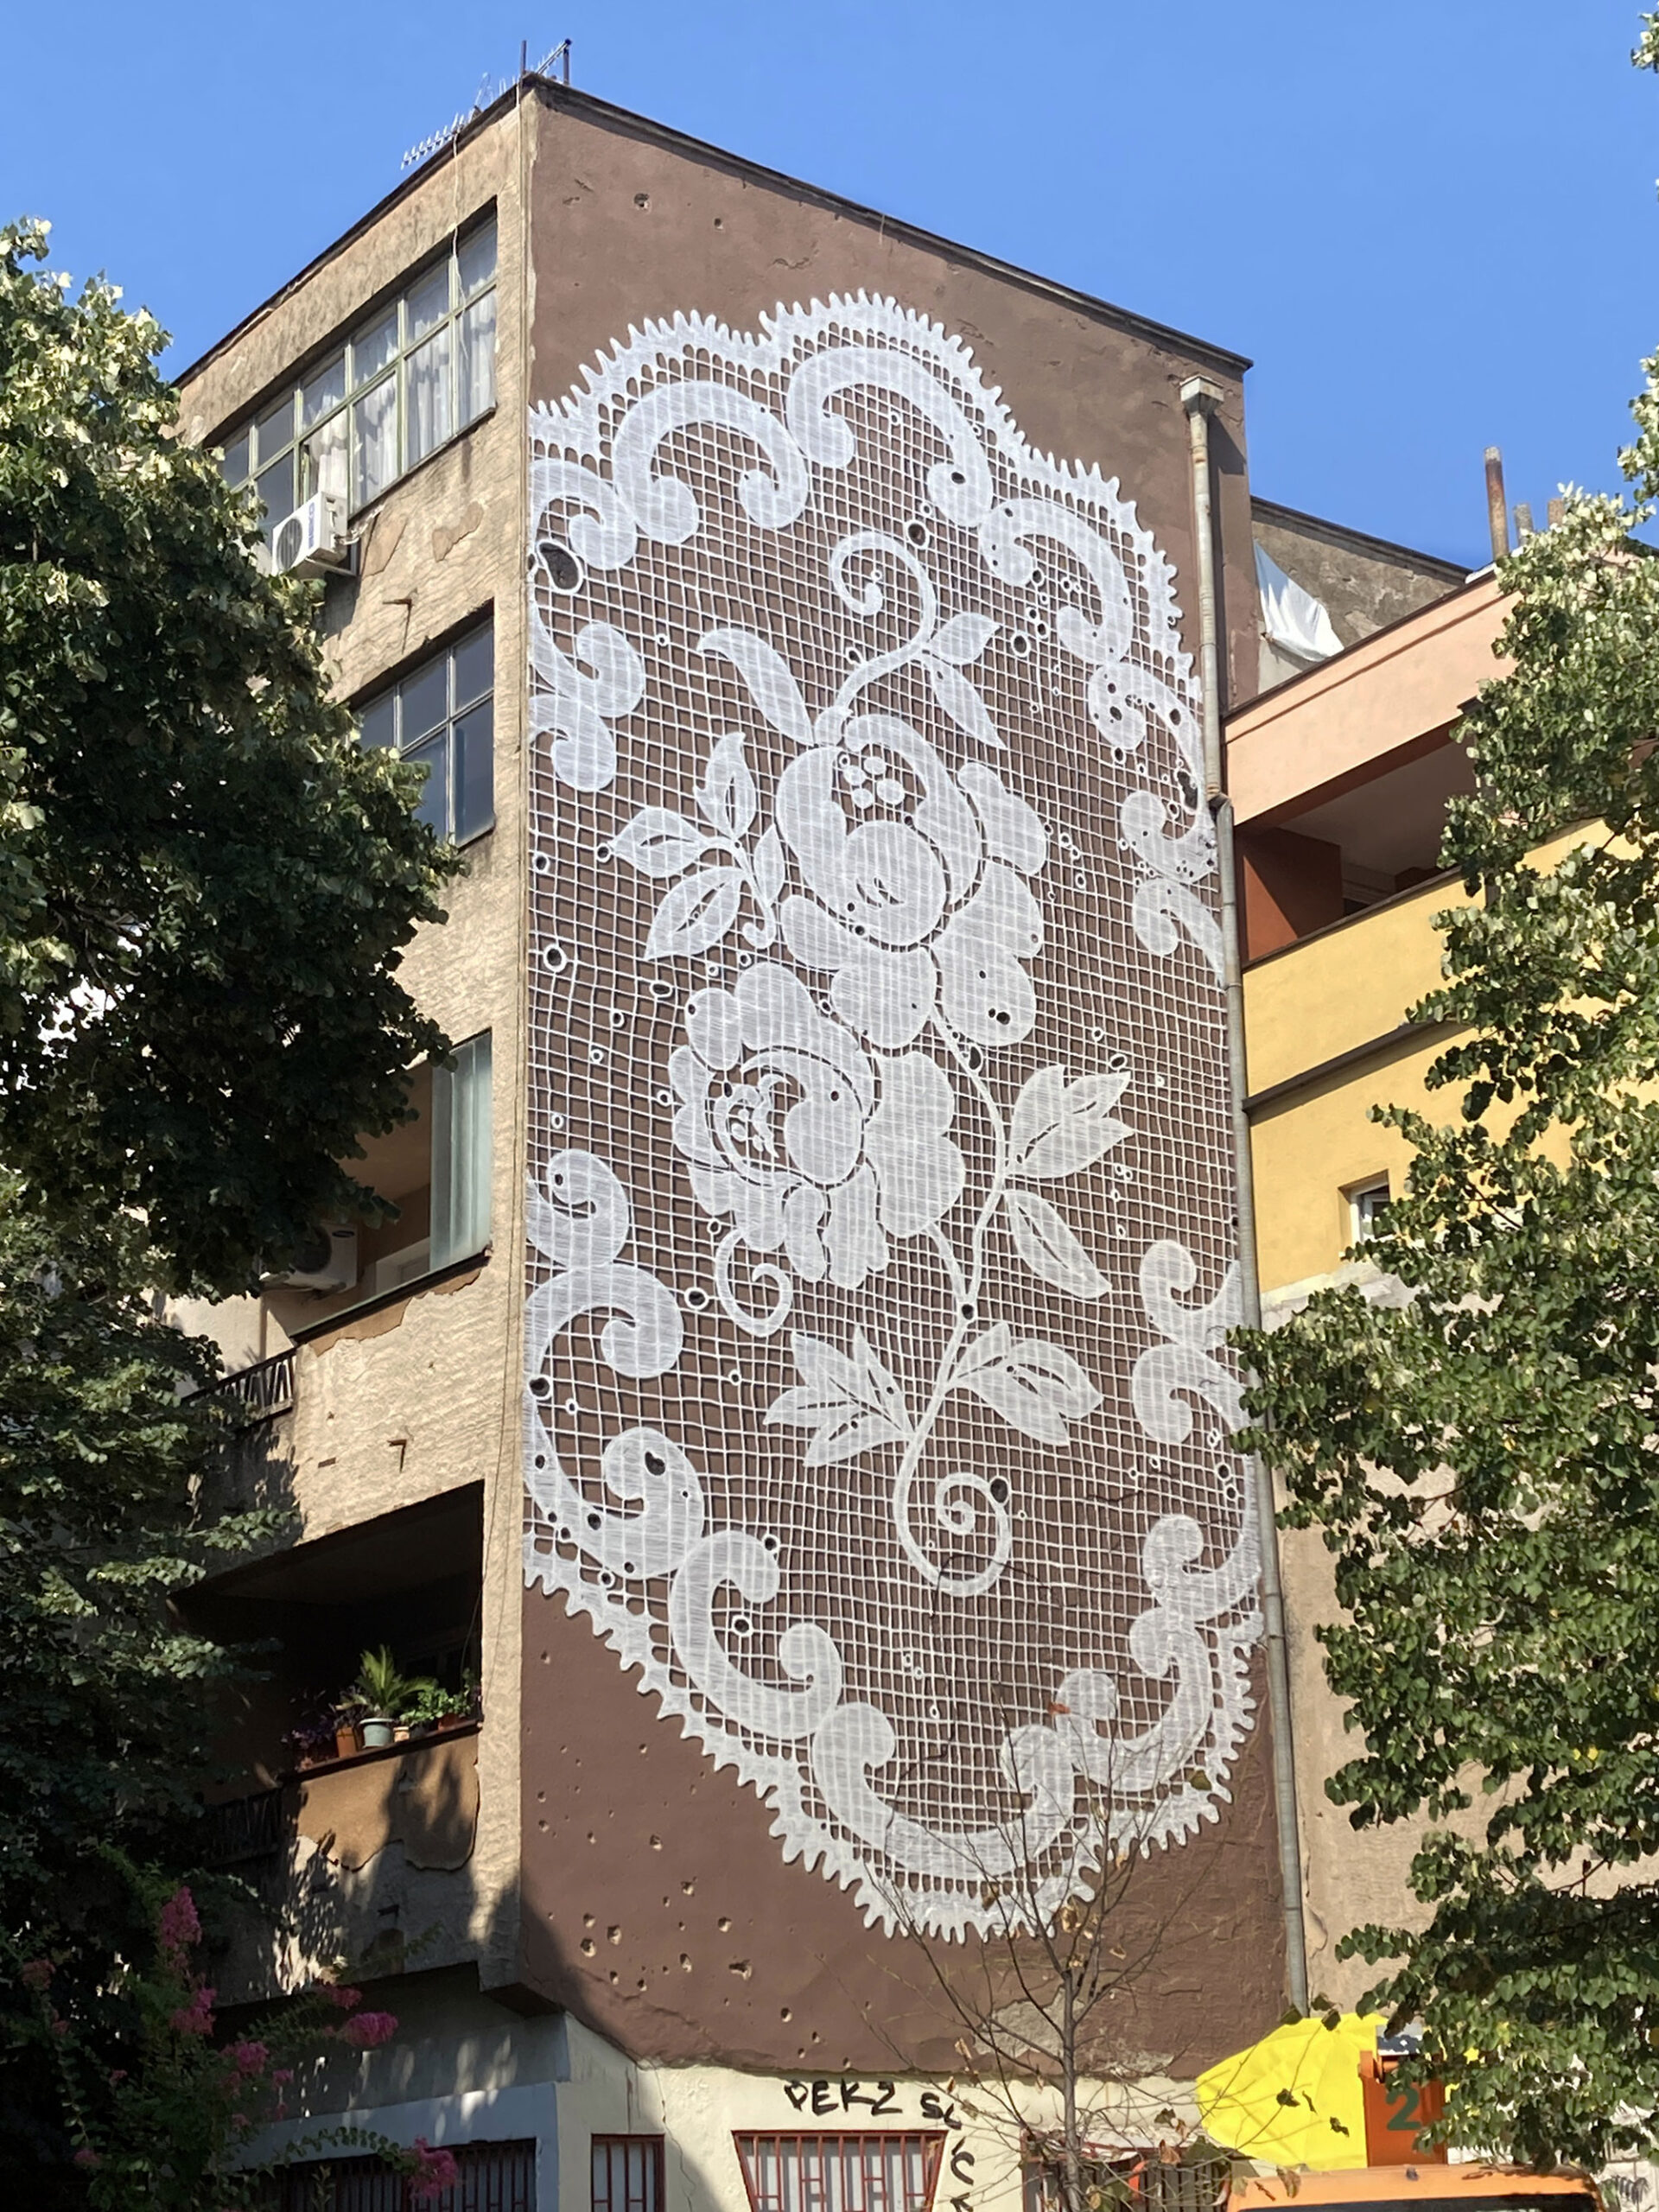 ornate-murals-by-nespoon-cloak-blank-facades-in-traditional-lace-patterns